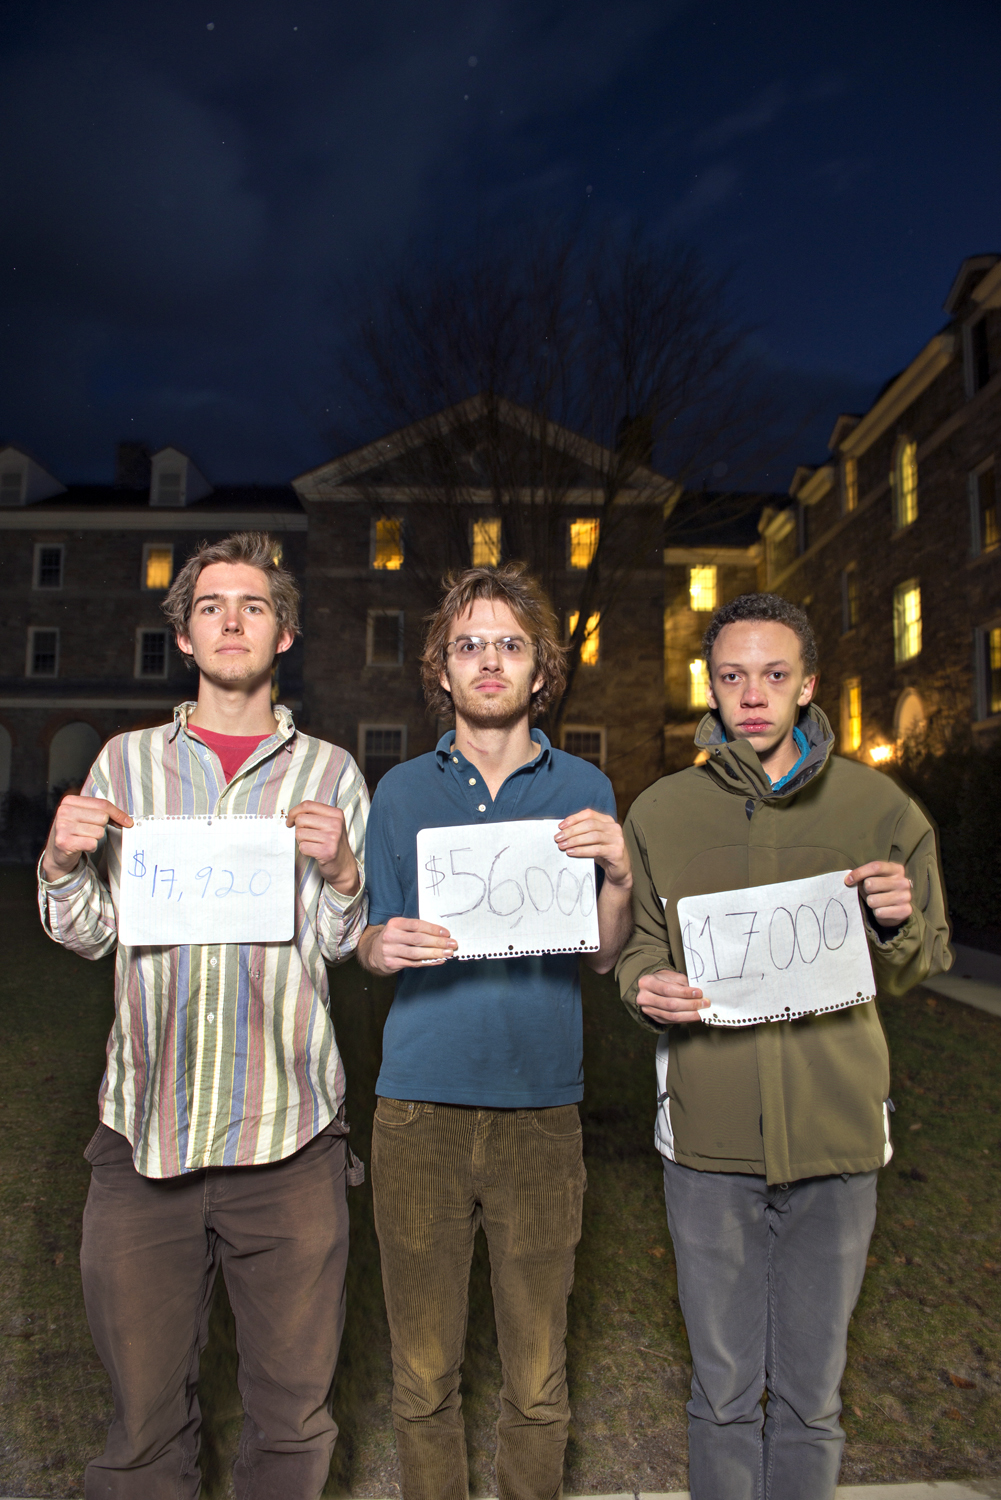 Middlebury College students Carter Kelly, Jay Sapir and Sam Kopinka-Loehr are raising issues of how much various students pay for college.